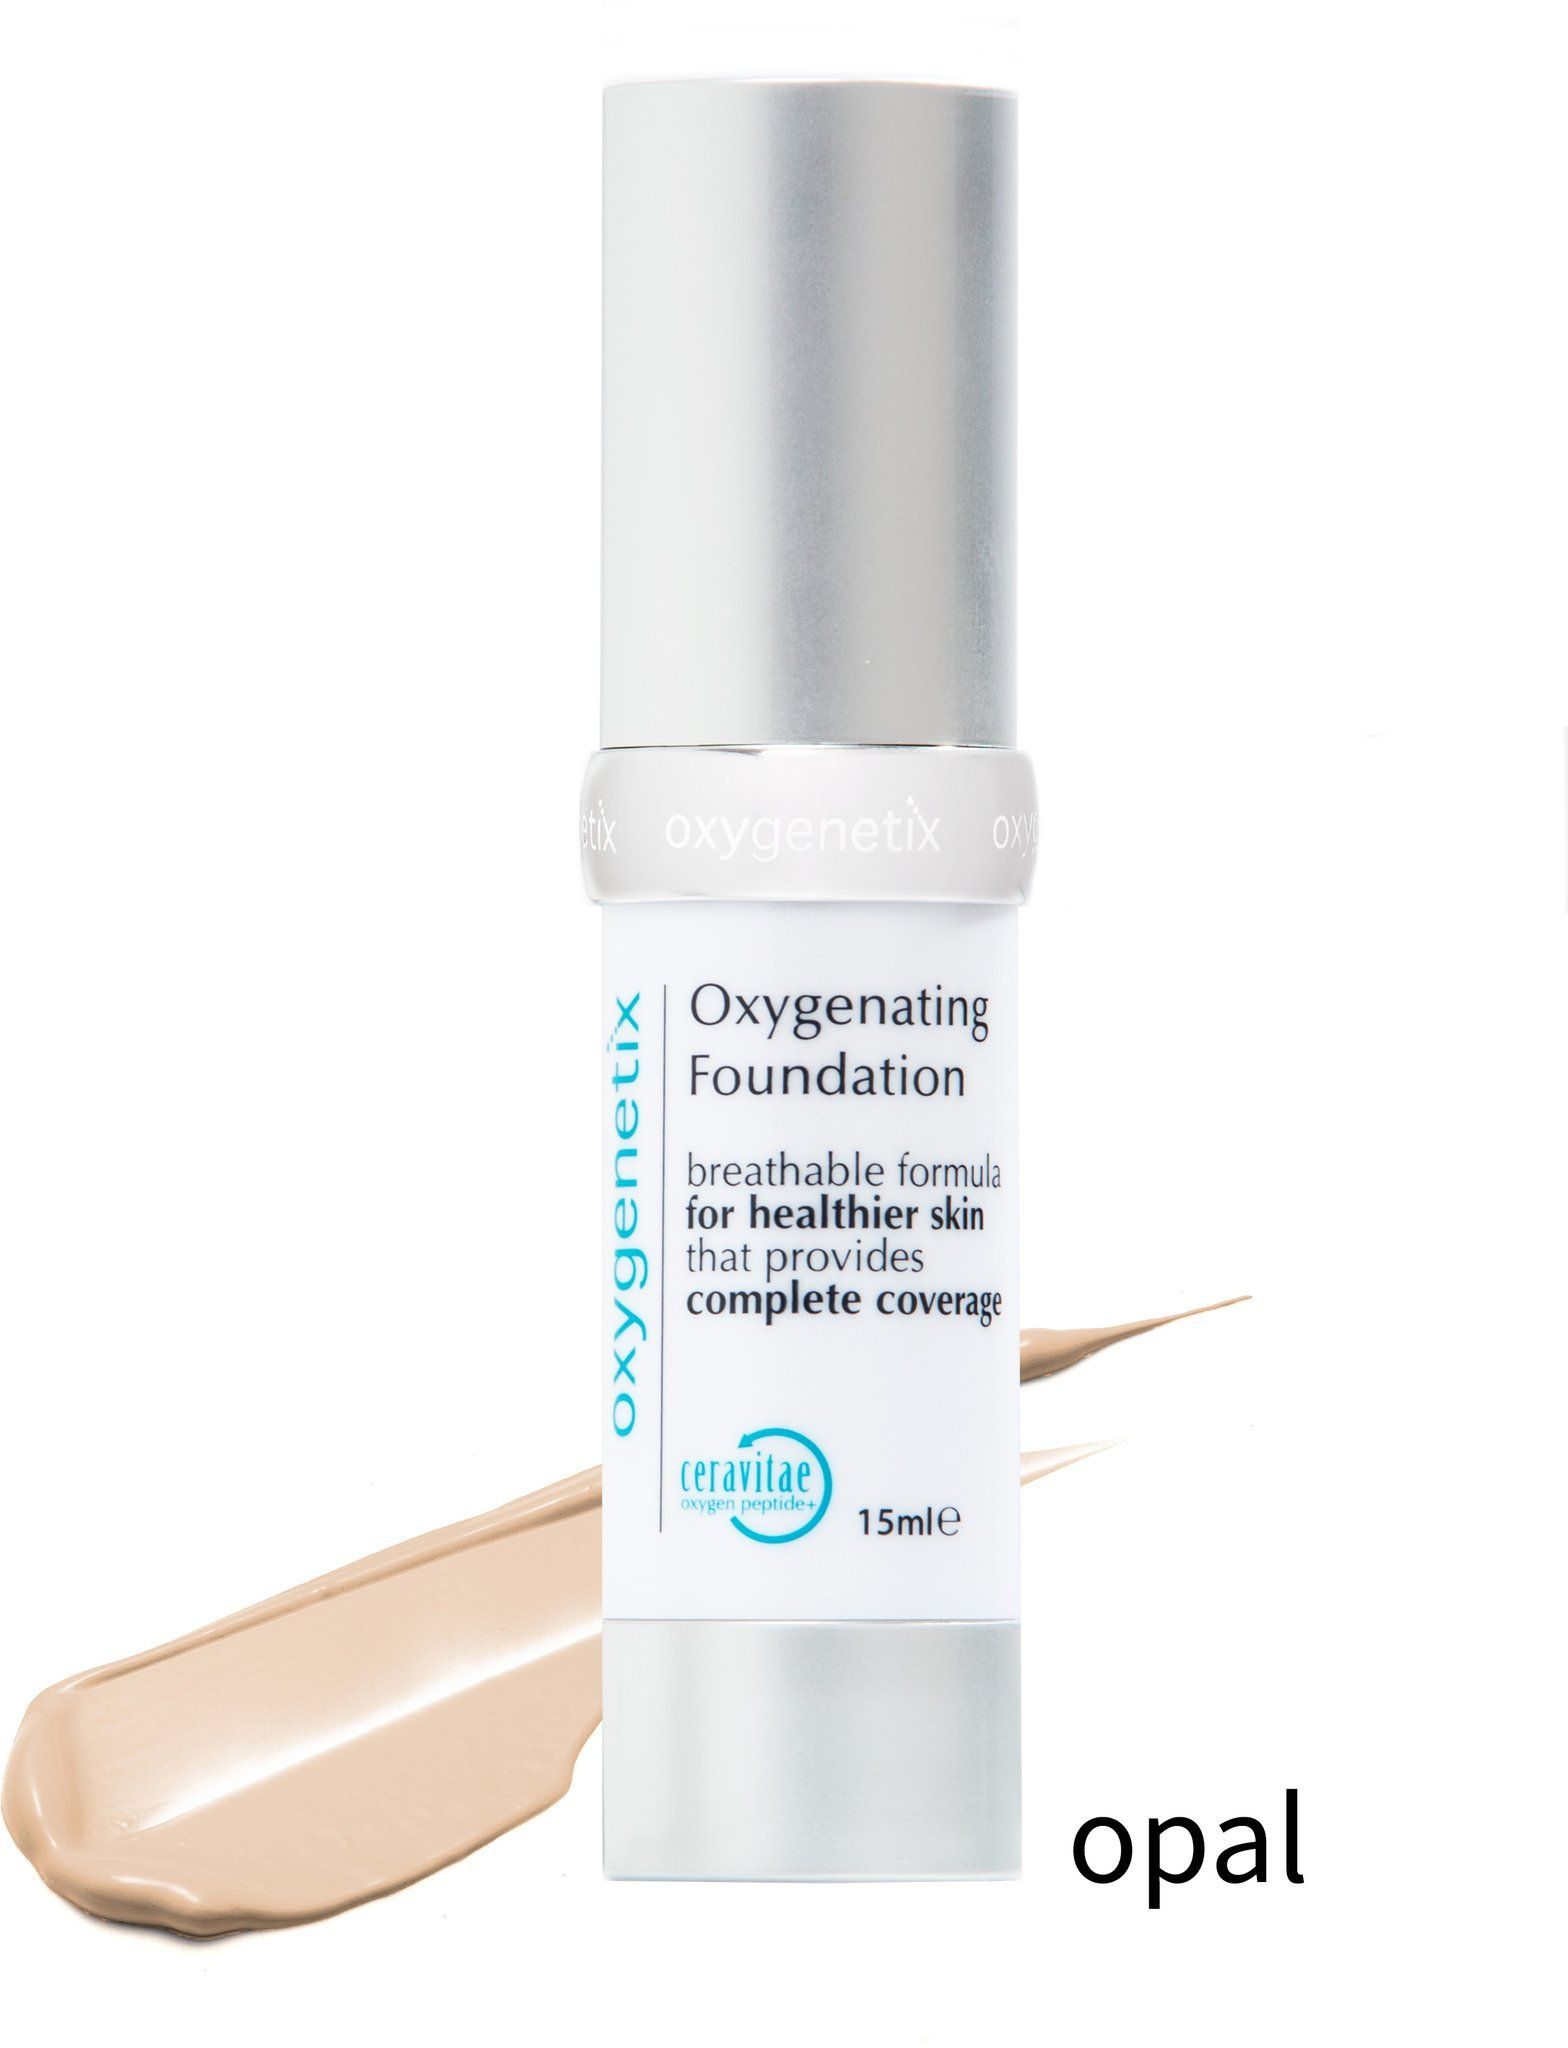 Oxygenating Foundation Foundation for sensitive skin